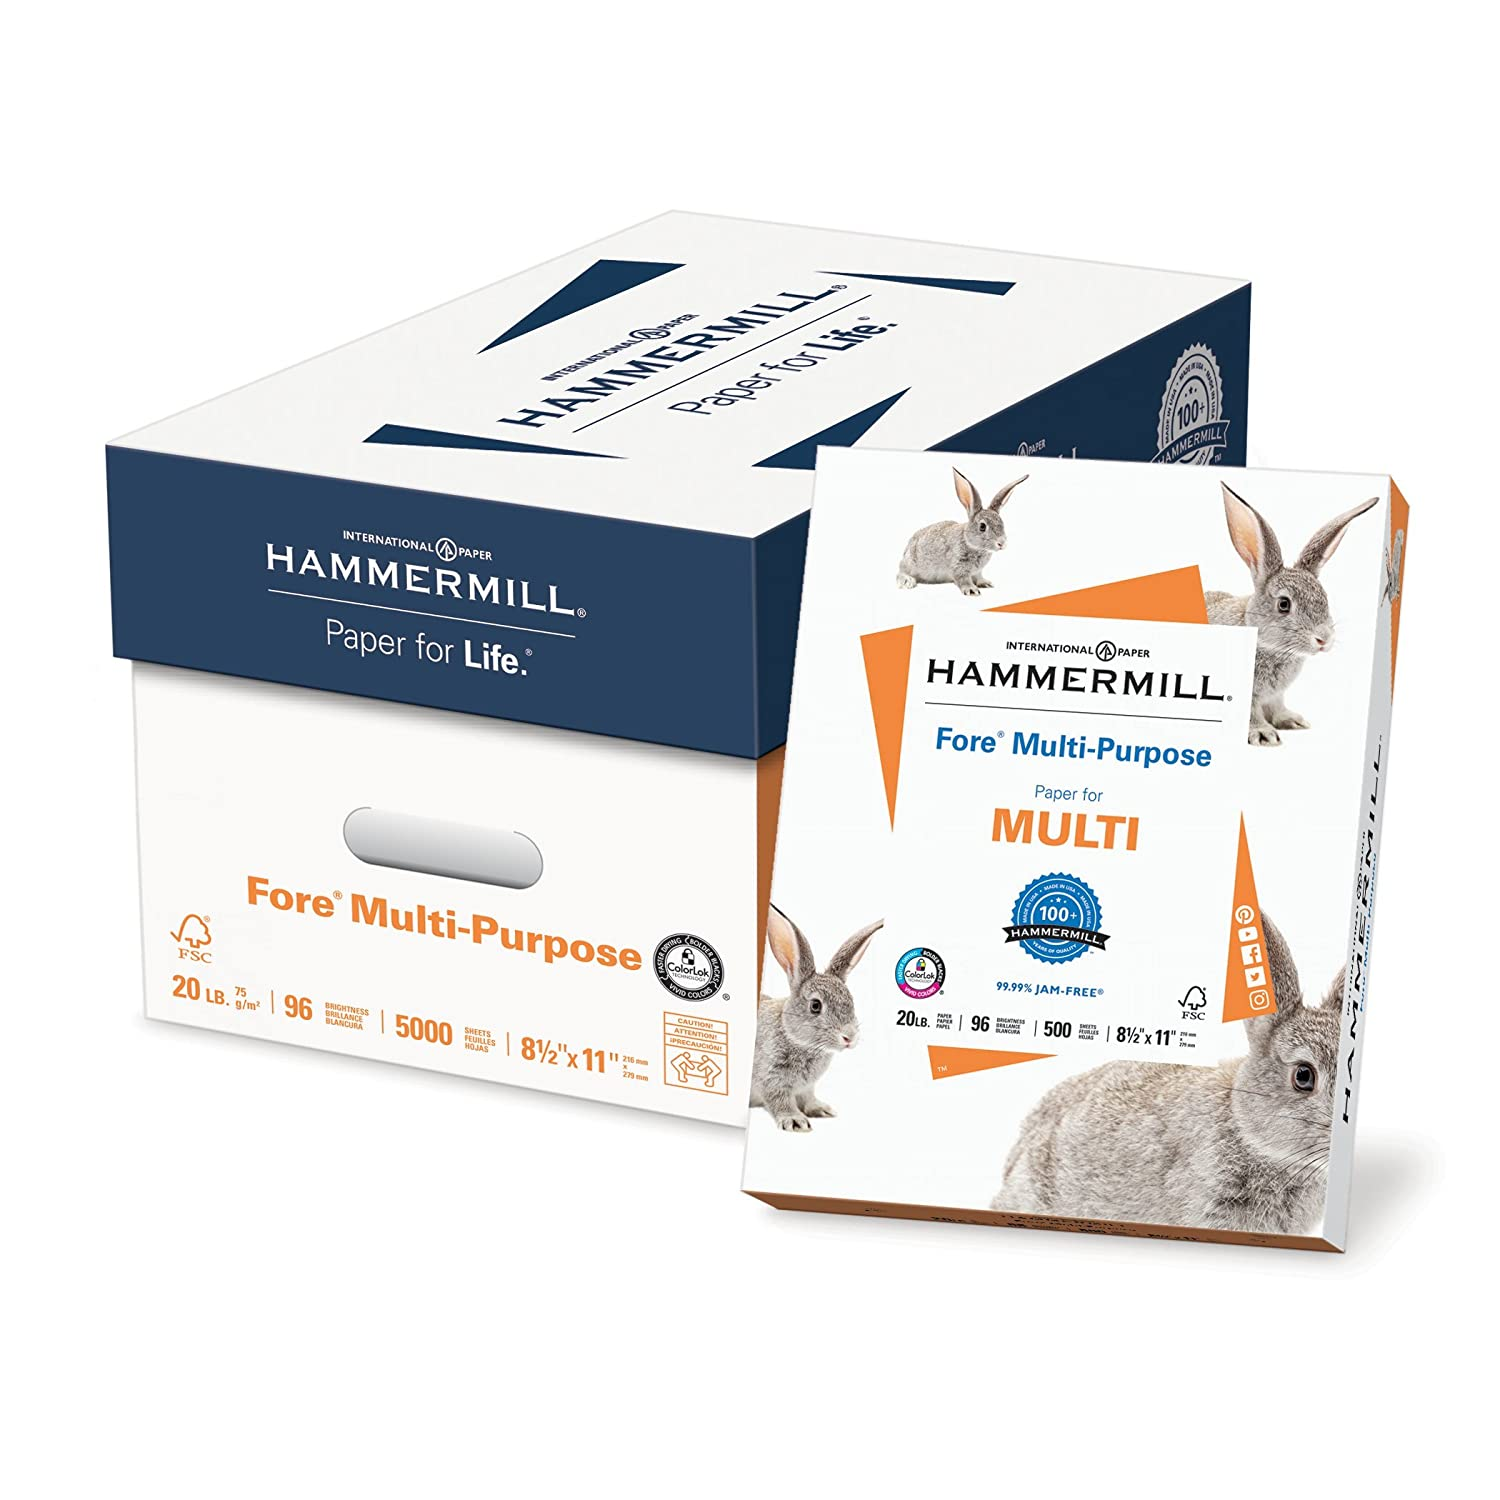 Hammermill Printer Paper, Fore MP Copy Paper, 24lb, 8.5 x 11, Letter, 96 Bright - 10 Pack / 5,000 Sheets(103283CC)